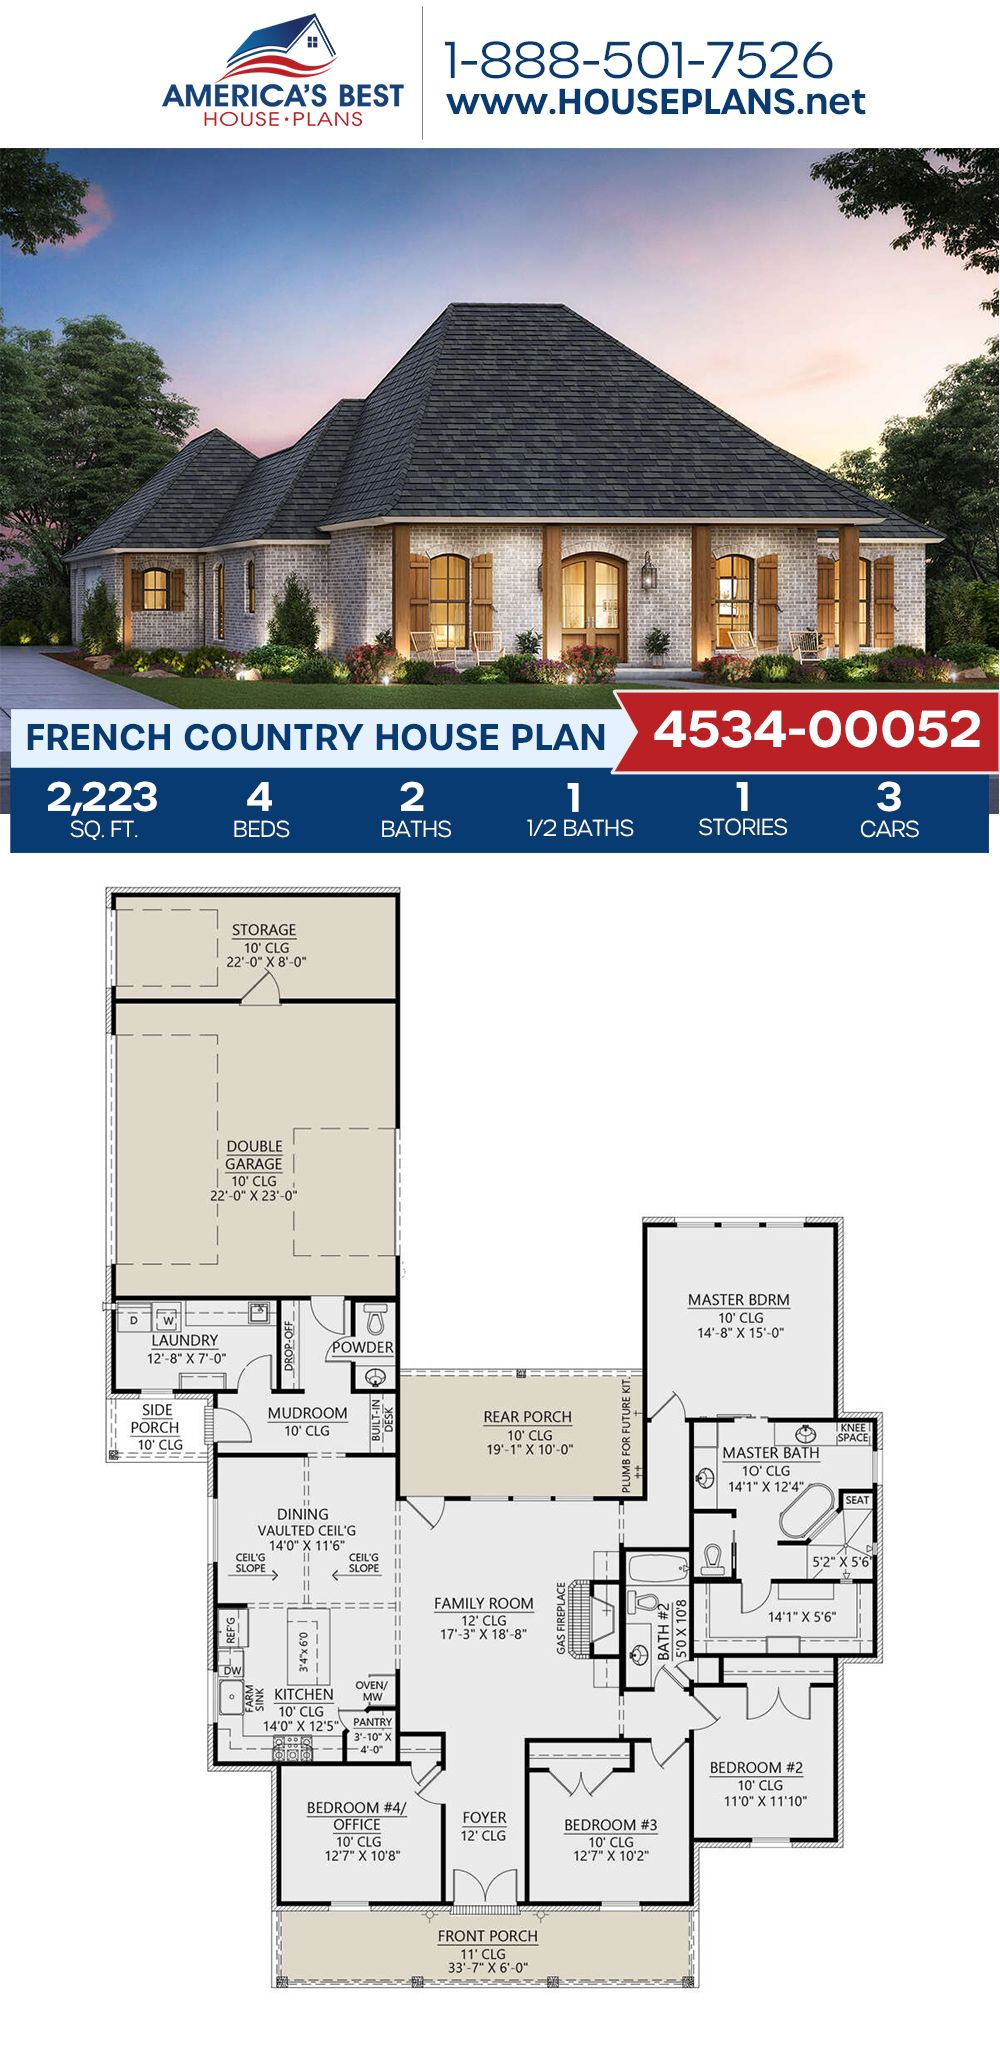 House Plan 4534 00052 French Country Plan 2 223 Square Feet 4 Bedrooms 2 5 Bathrooms French Country House Plans French Country House Country House Design